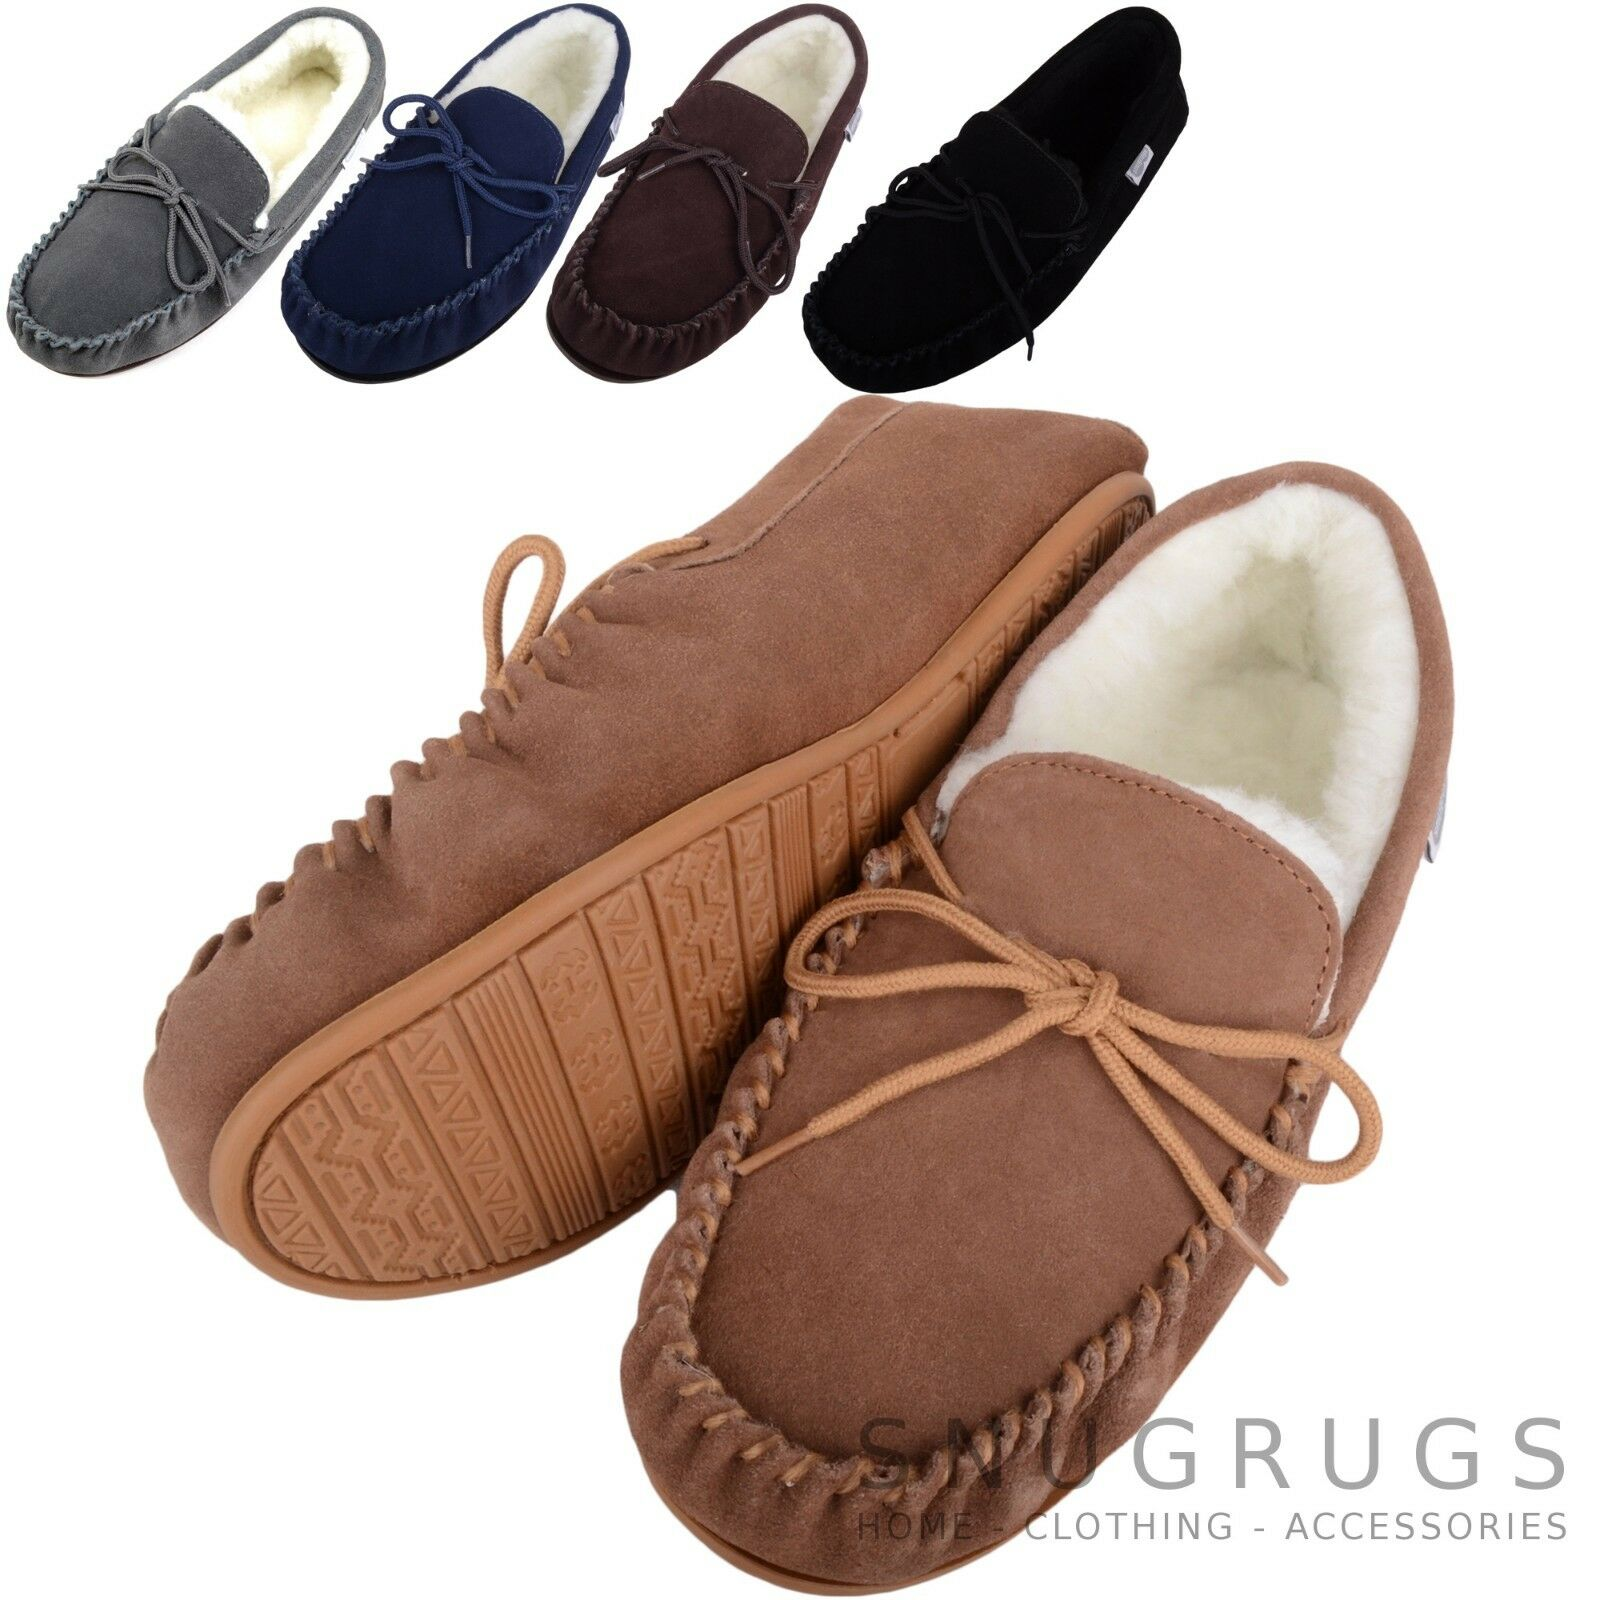 7310aa0e70c Details about SNUGRUGS Mens Genuine Suede Moccasin Sheepskin Slippers  Rubber Sole sizes 6-15